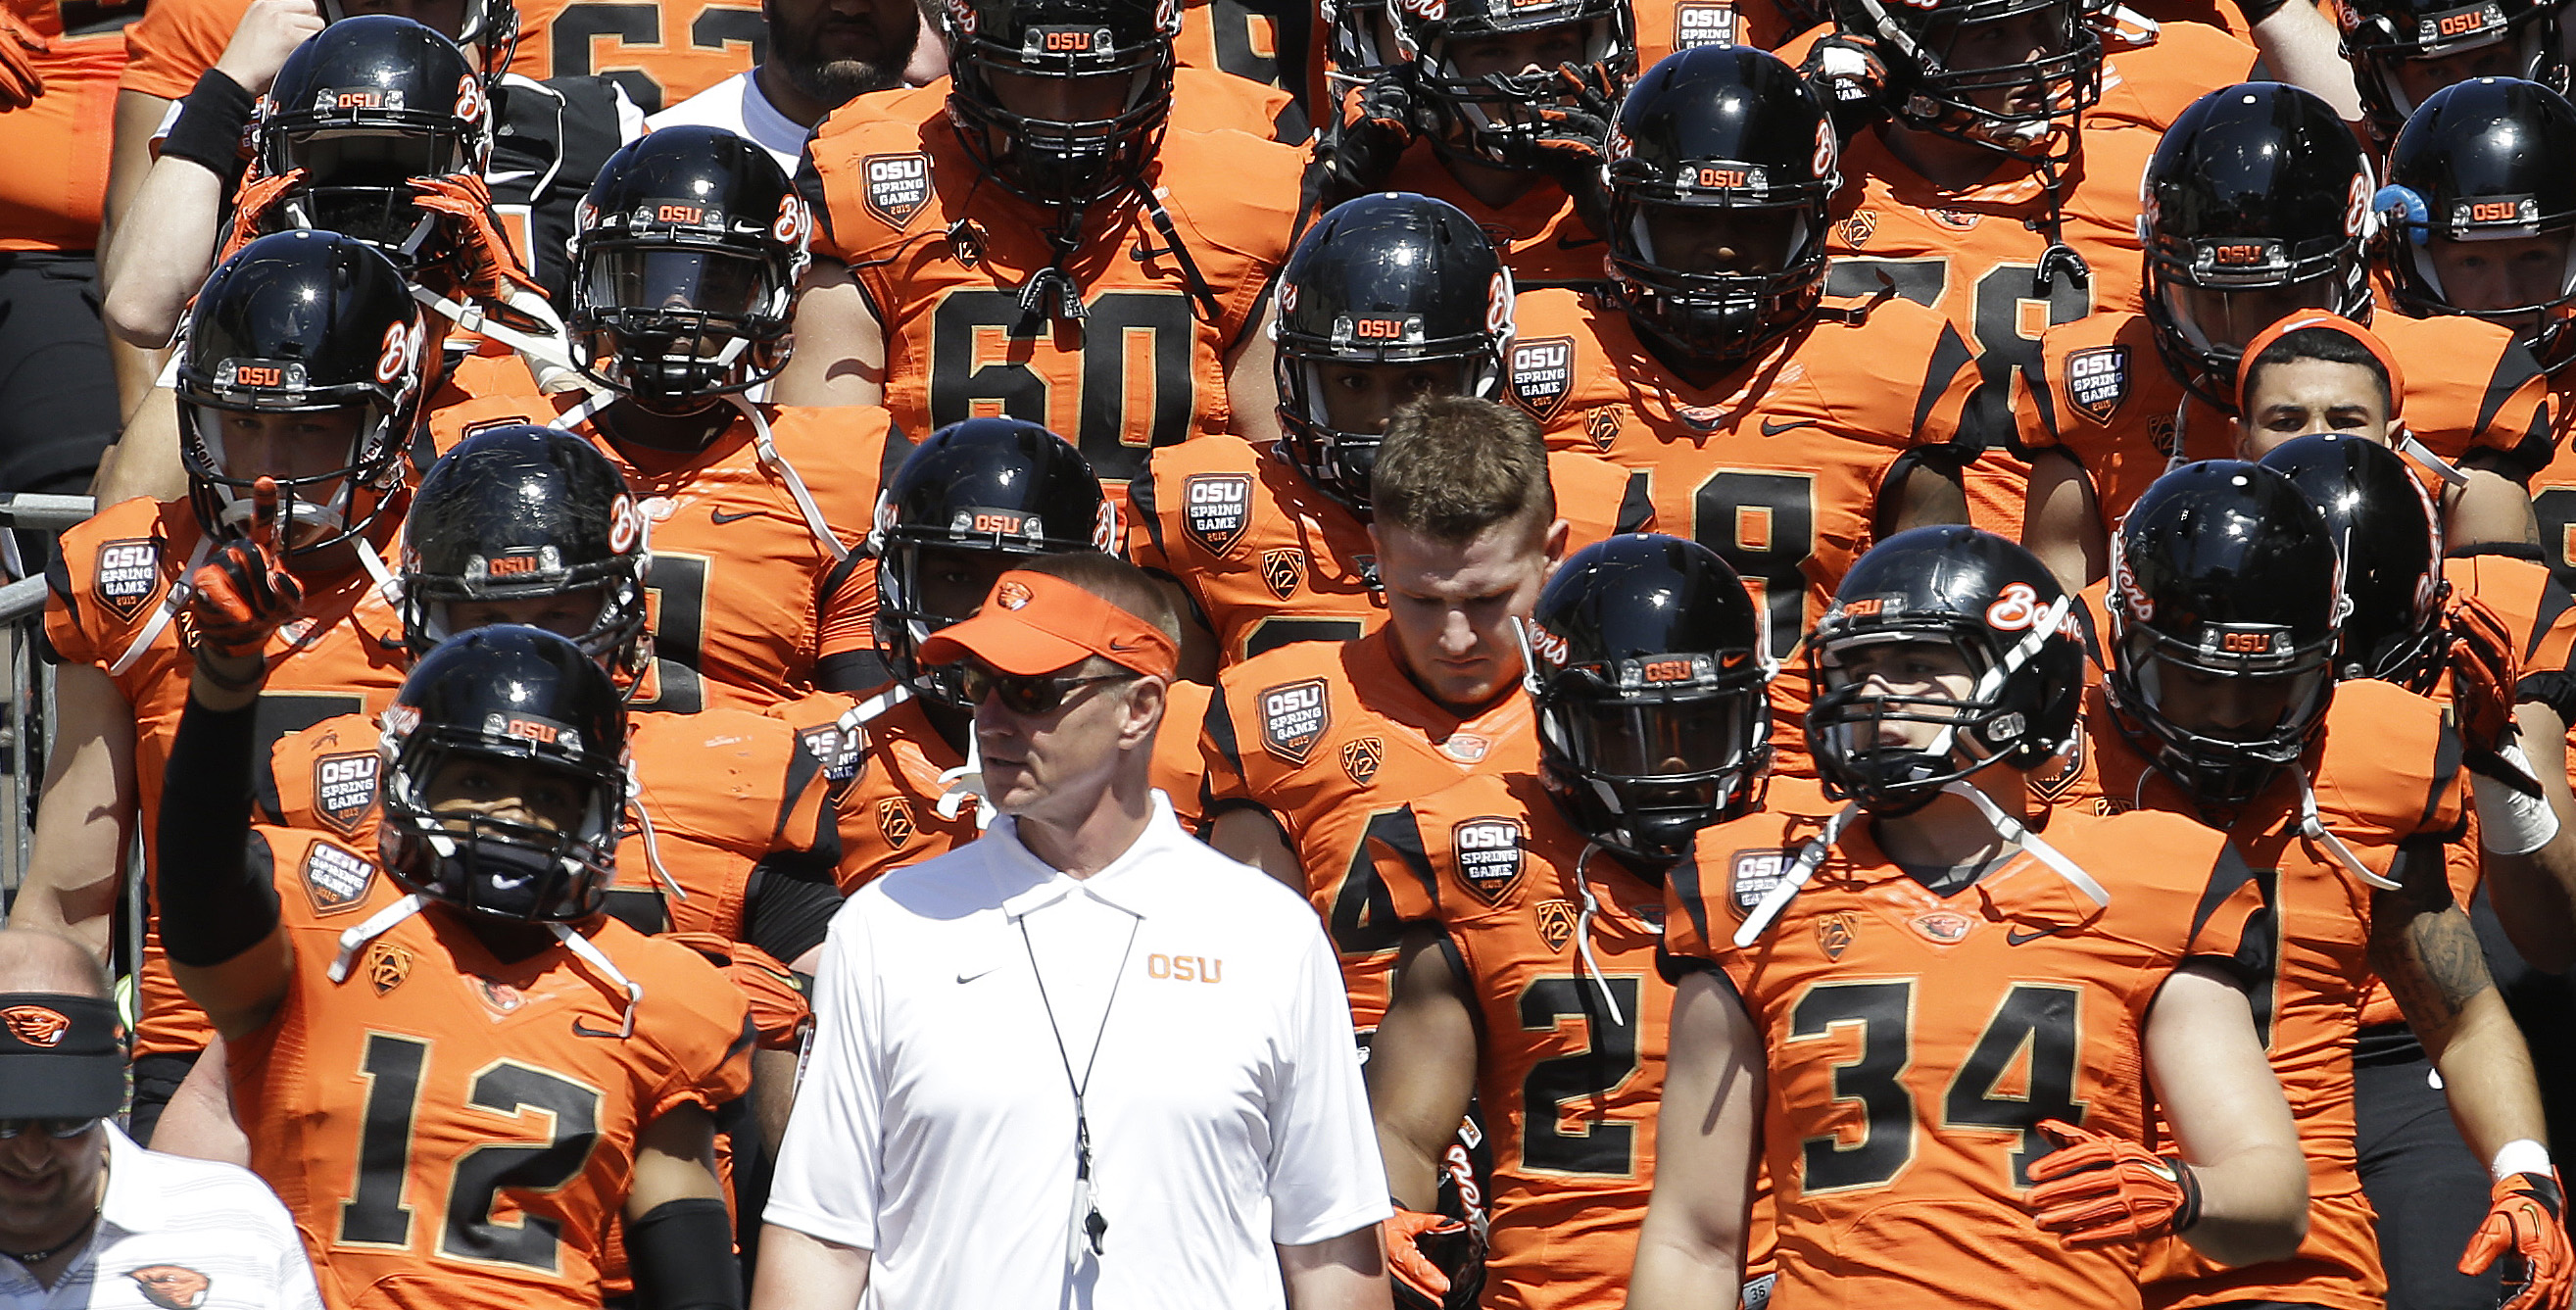 FILE - In this April 18, 2015, file photo, Oregon State coach Gary Anderson walks onto the field with the orange squad before their NCAA college football spring game in Corvallis, Ore. The Pac-12's only new coach this fall realized he was rejoining a leag